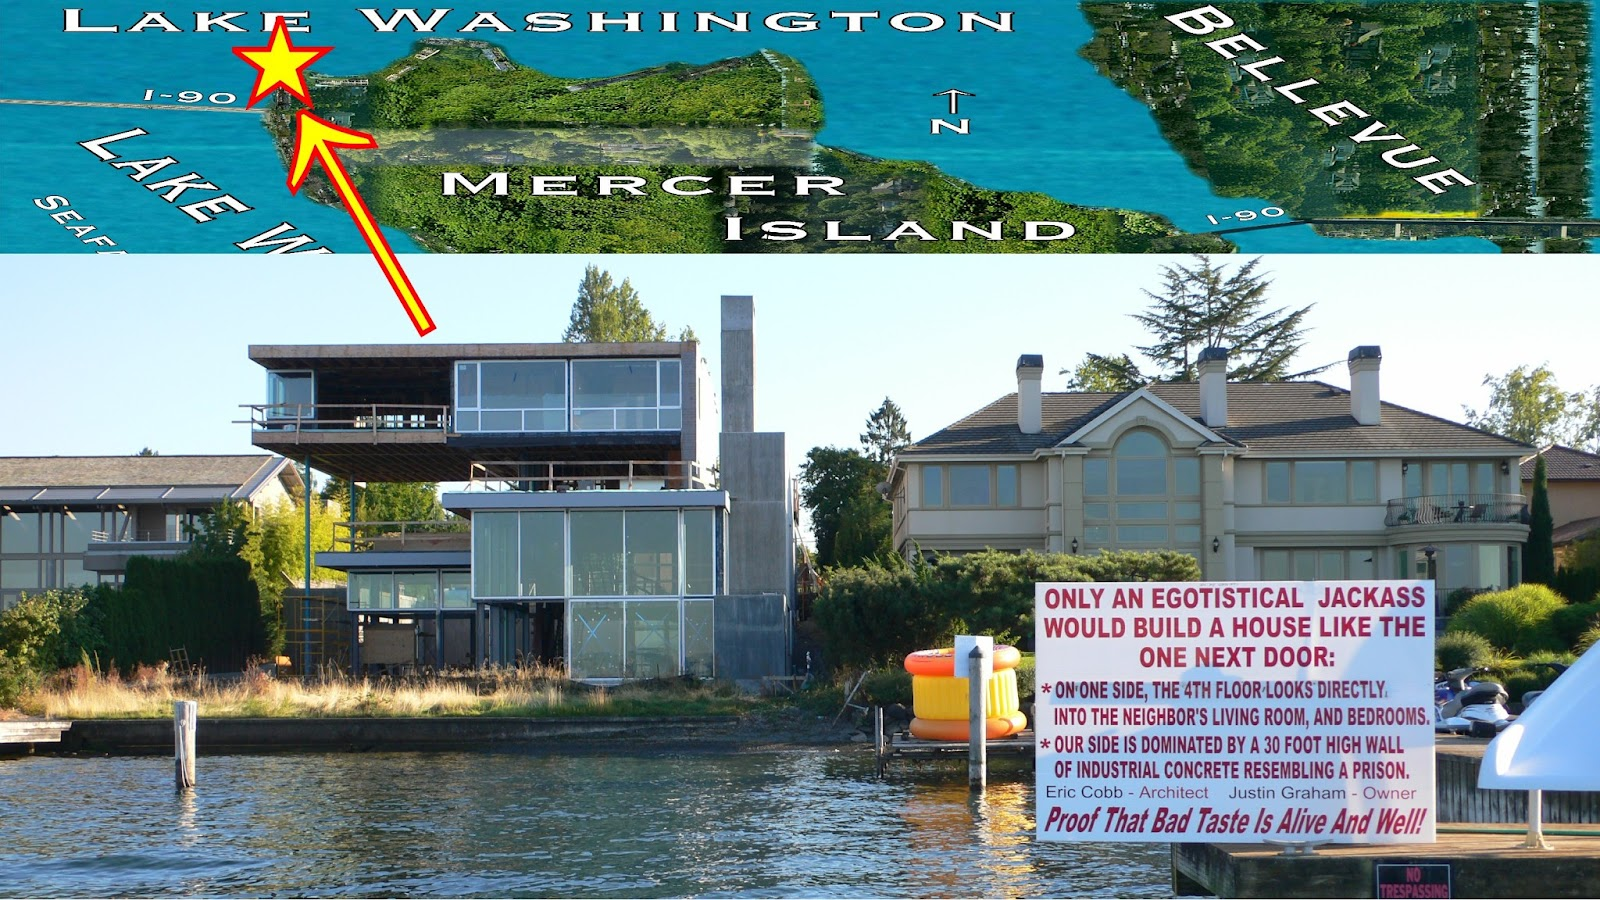 Seattle mansions famous sign mercer island north end for The mercer